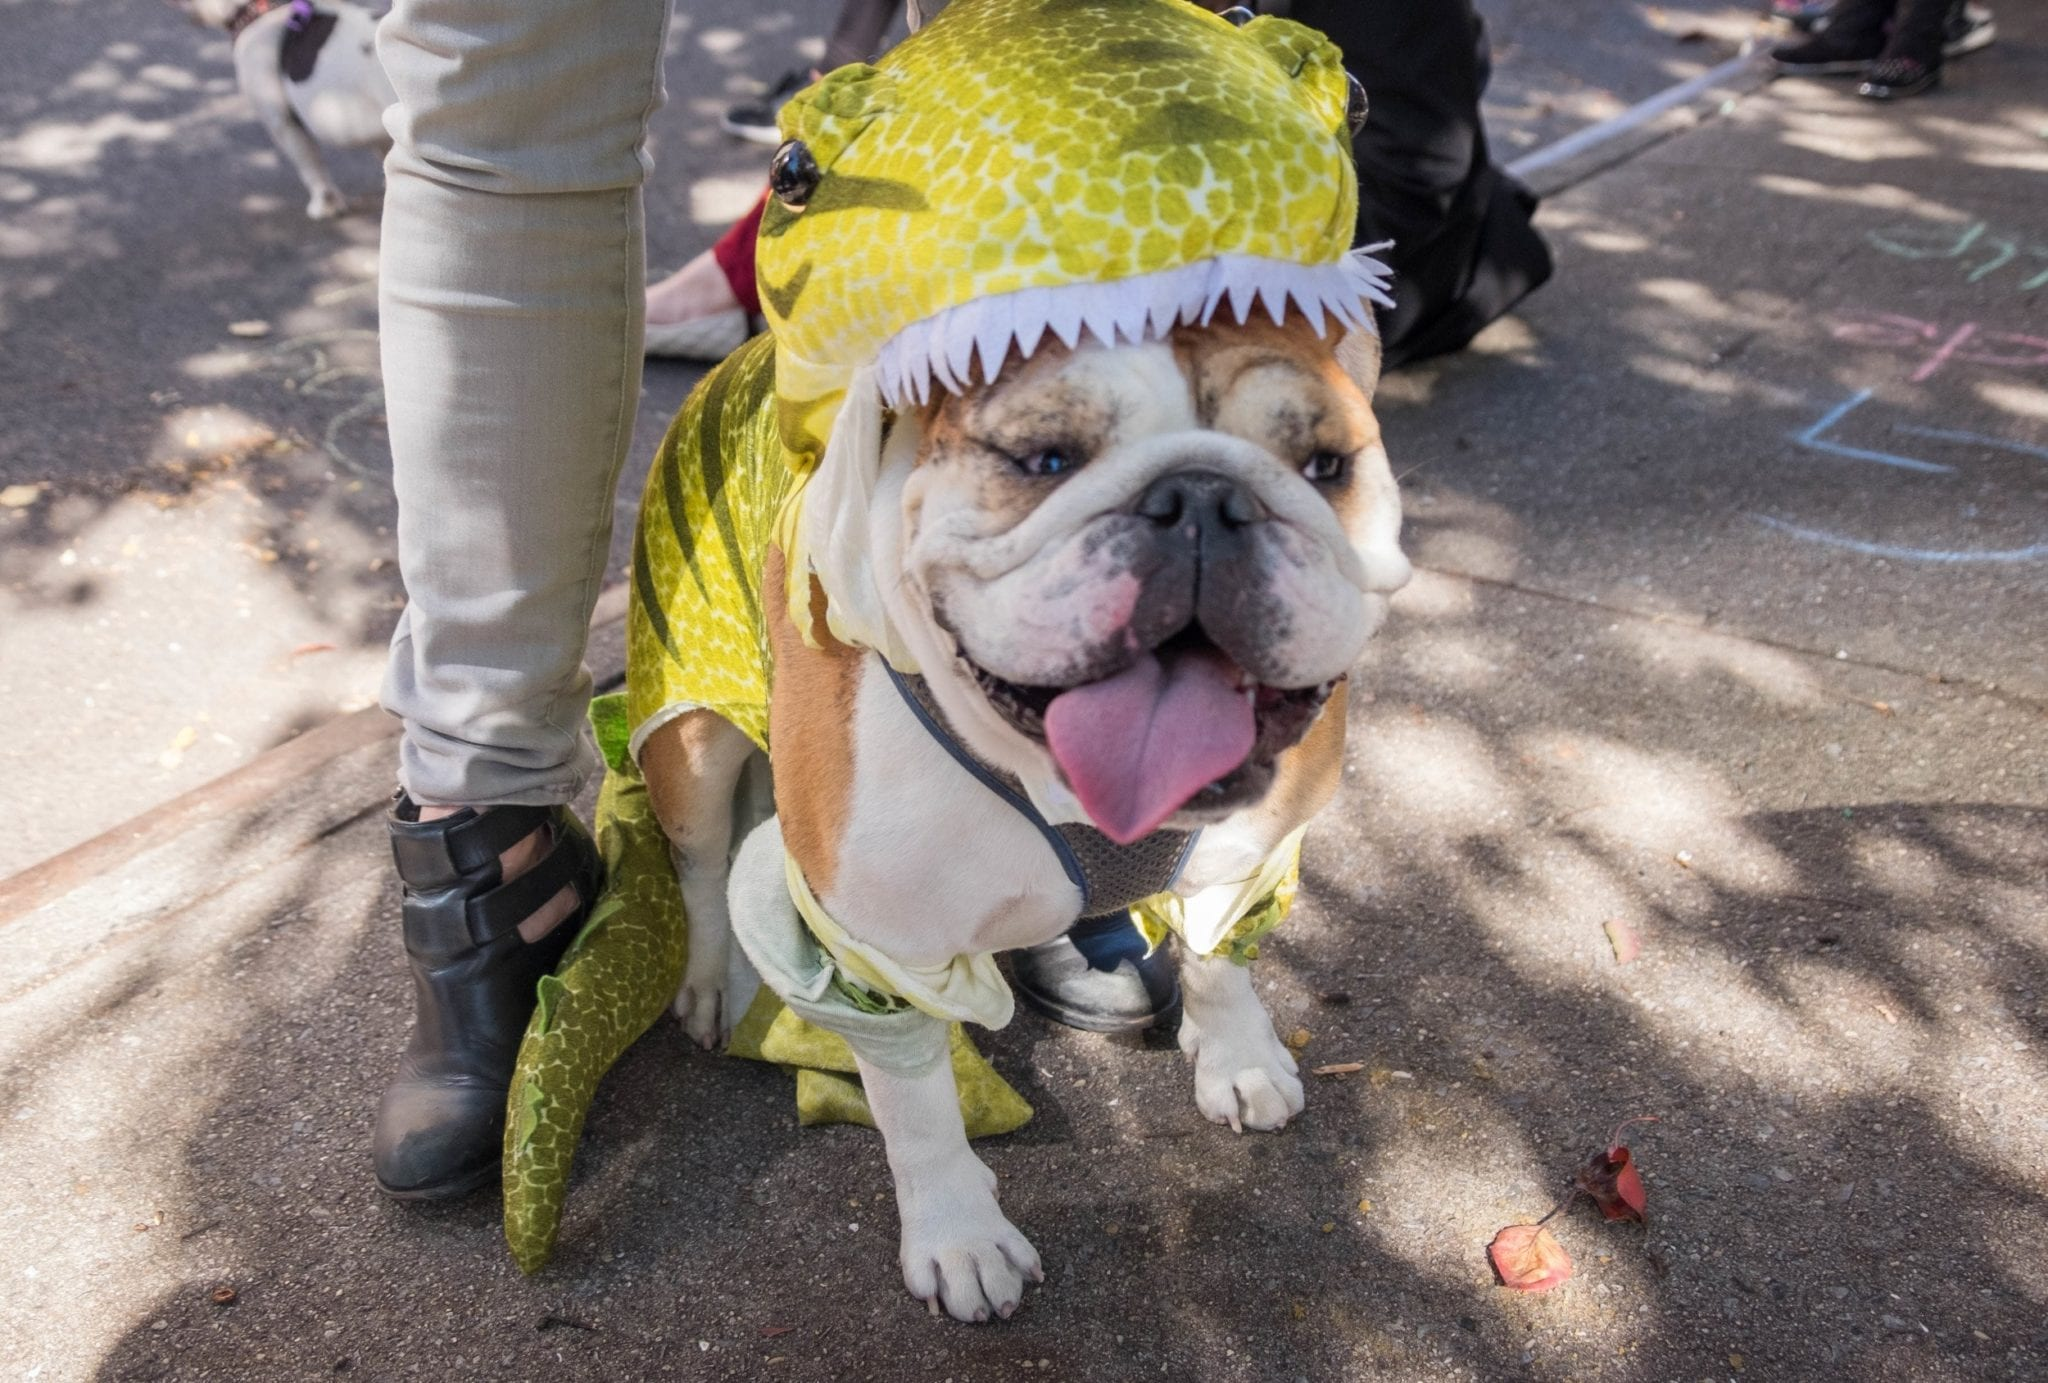 32fc39743e2 Isn t that an awesome bulldog name  AND LOOK HOW HAPPY SHE IS. Even as  she s being eaten by a dinosaur.